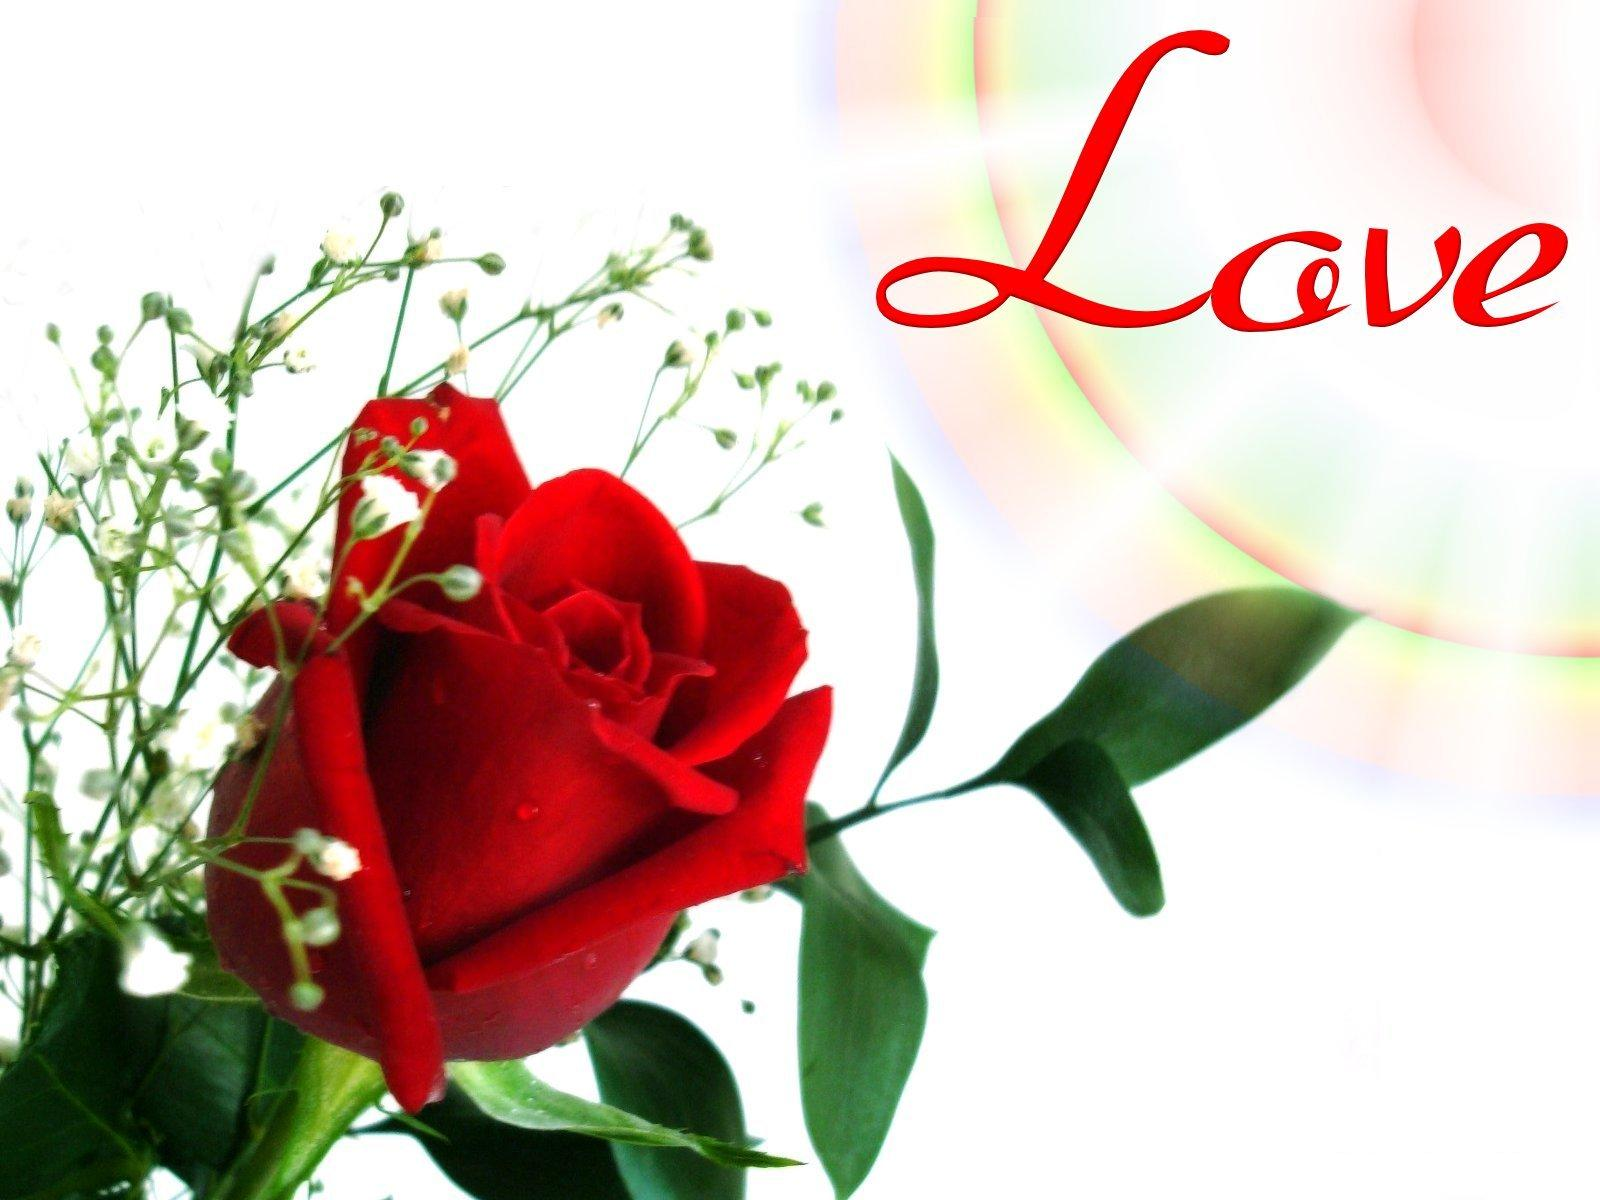 Love Flower Wallpaper Images : Latest Red Rose Flowers Wallpapers - Entertainment Only